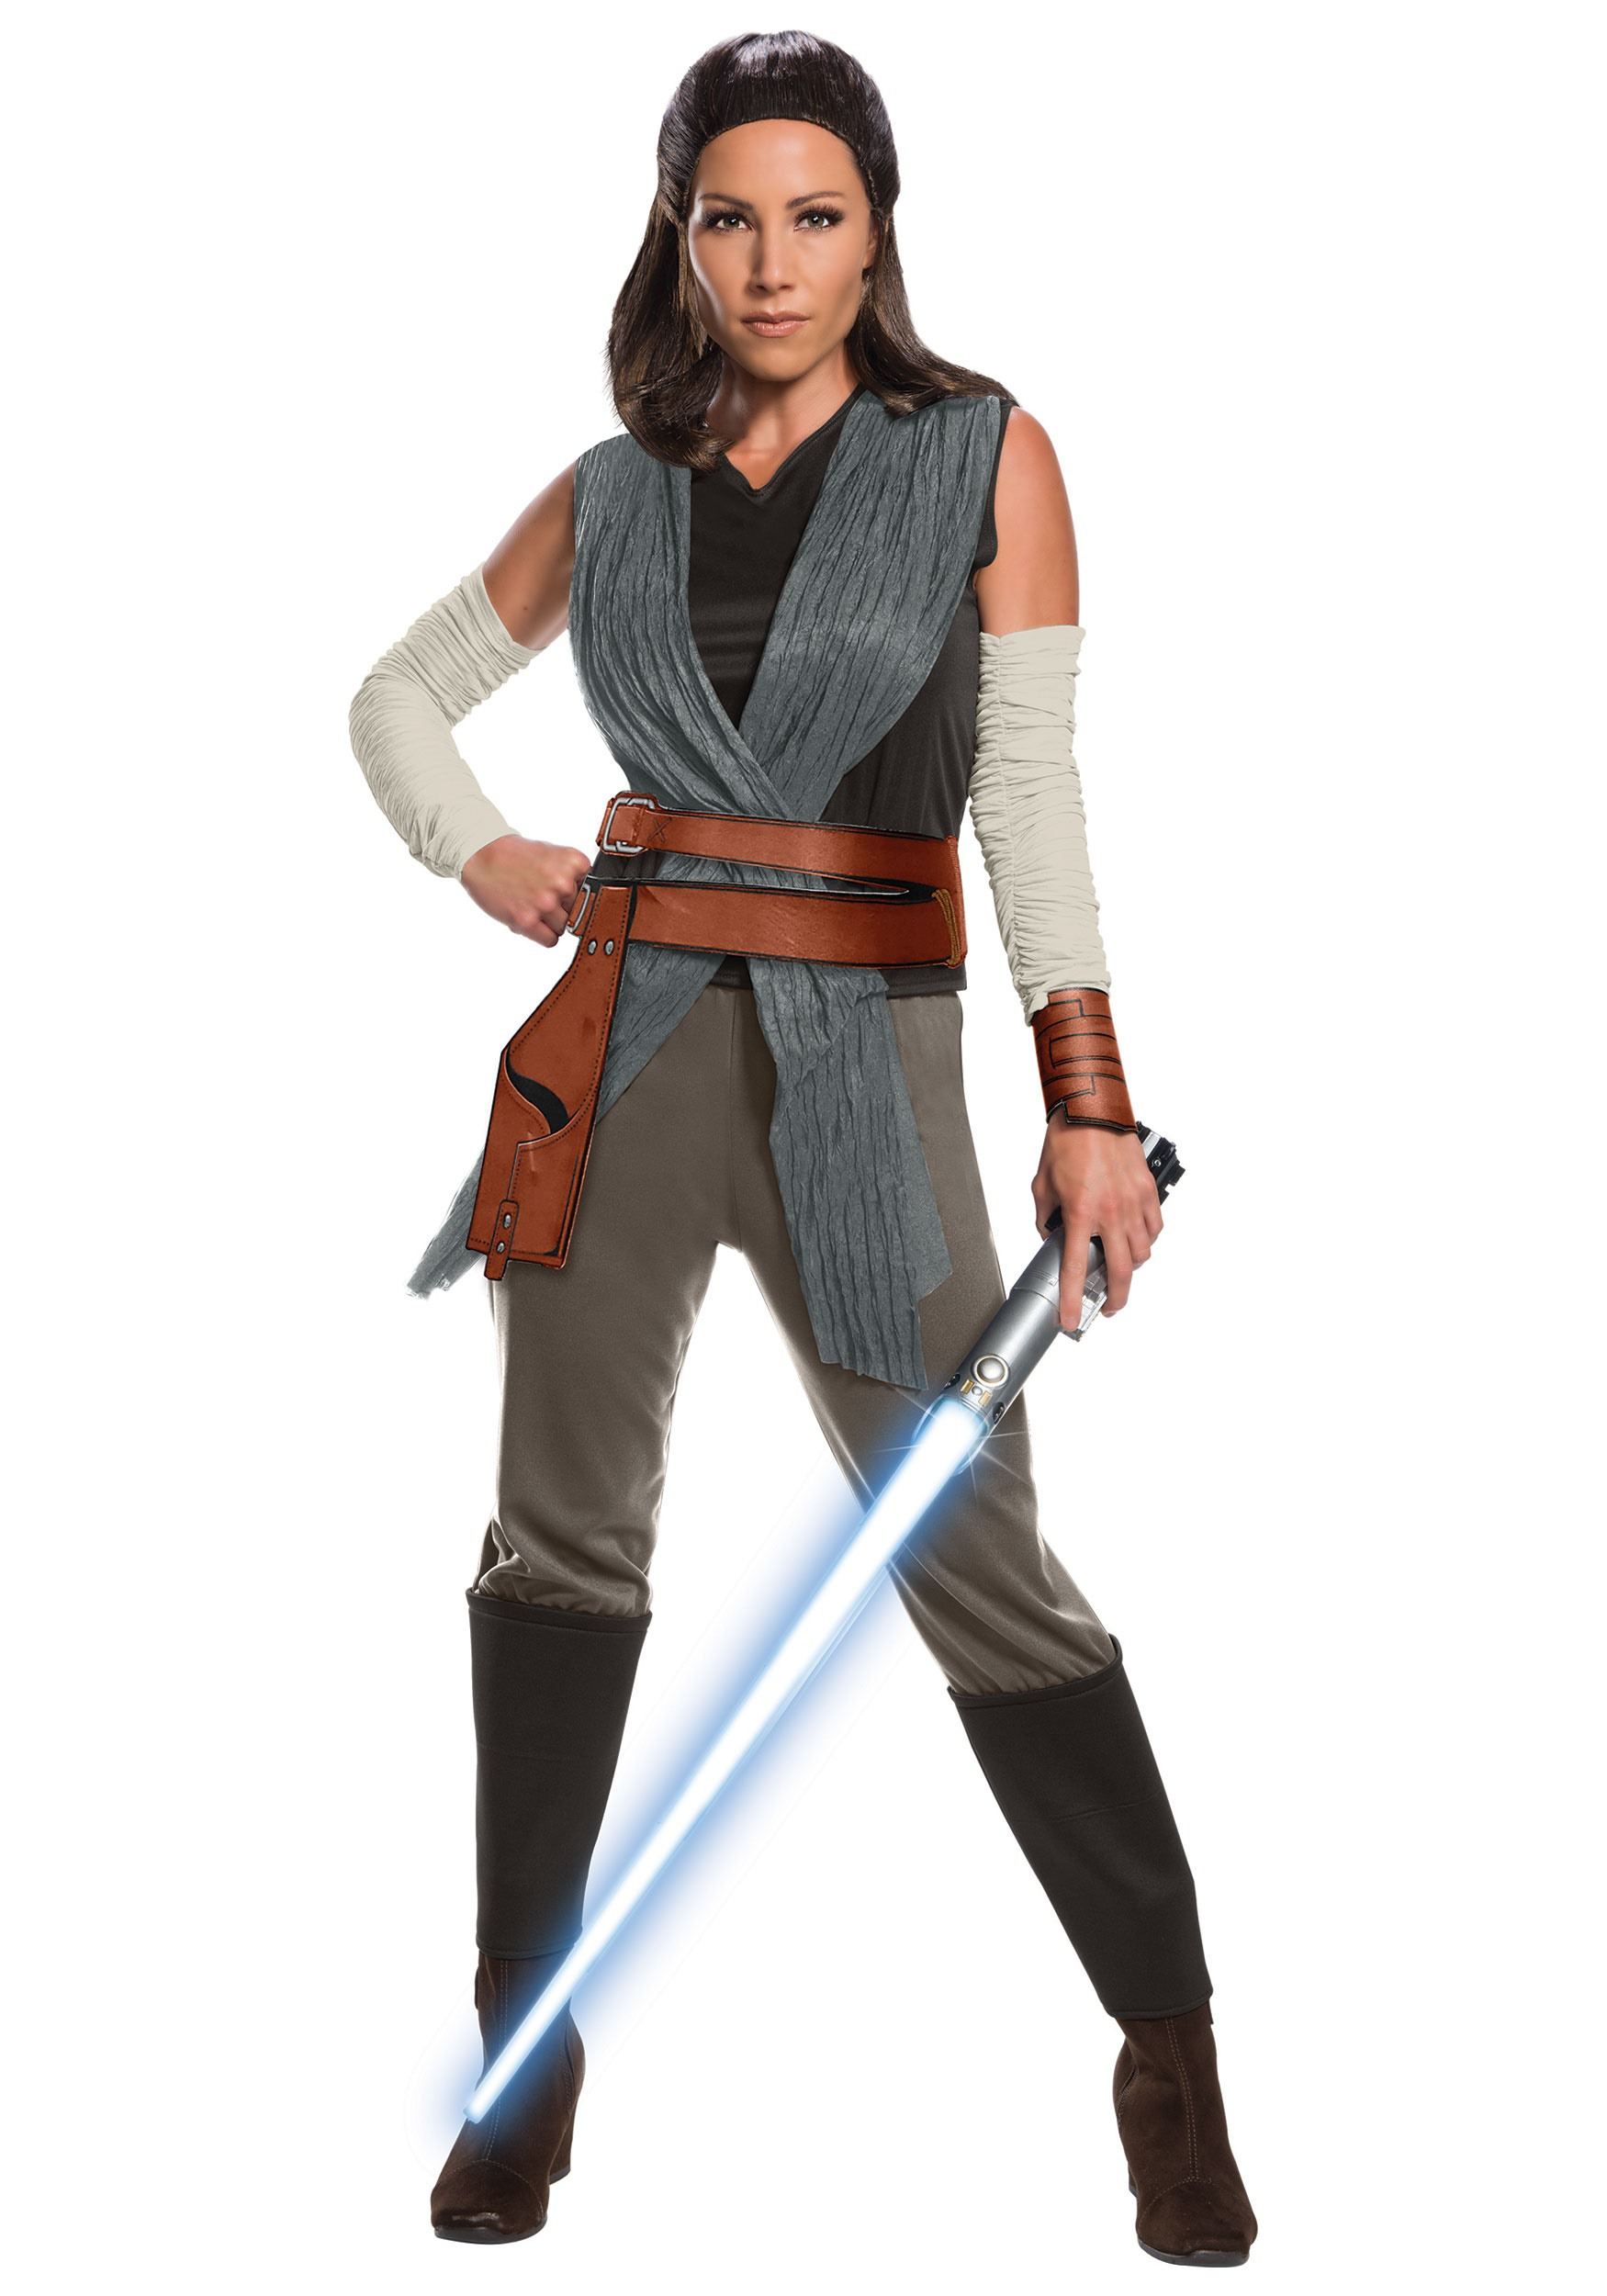 e70d7d5c4 Star Wars Costumes For Adults